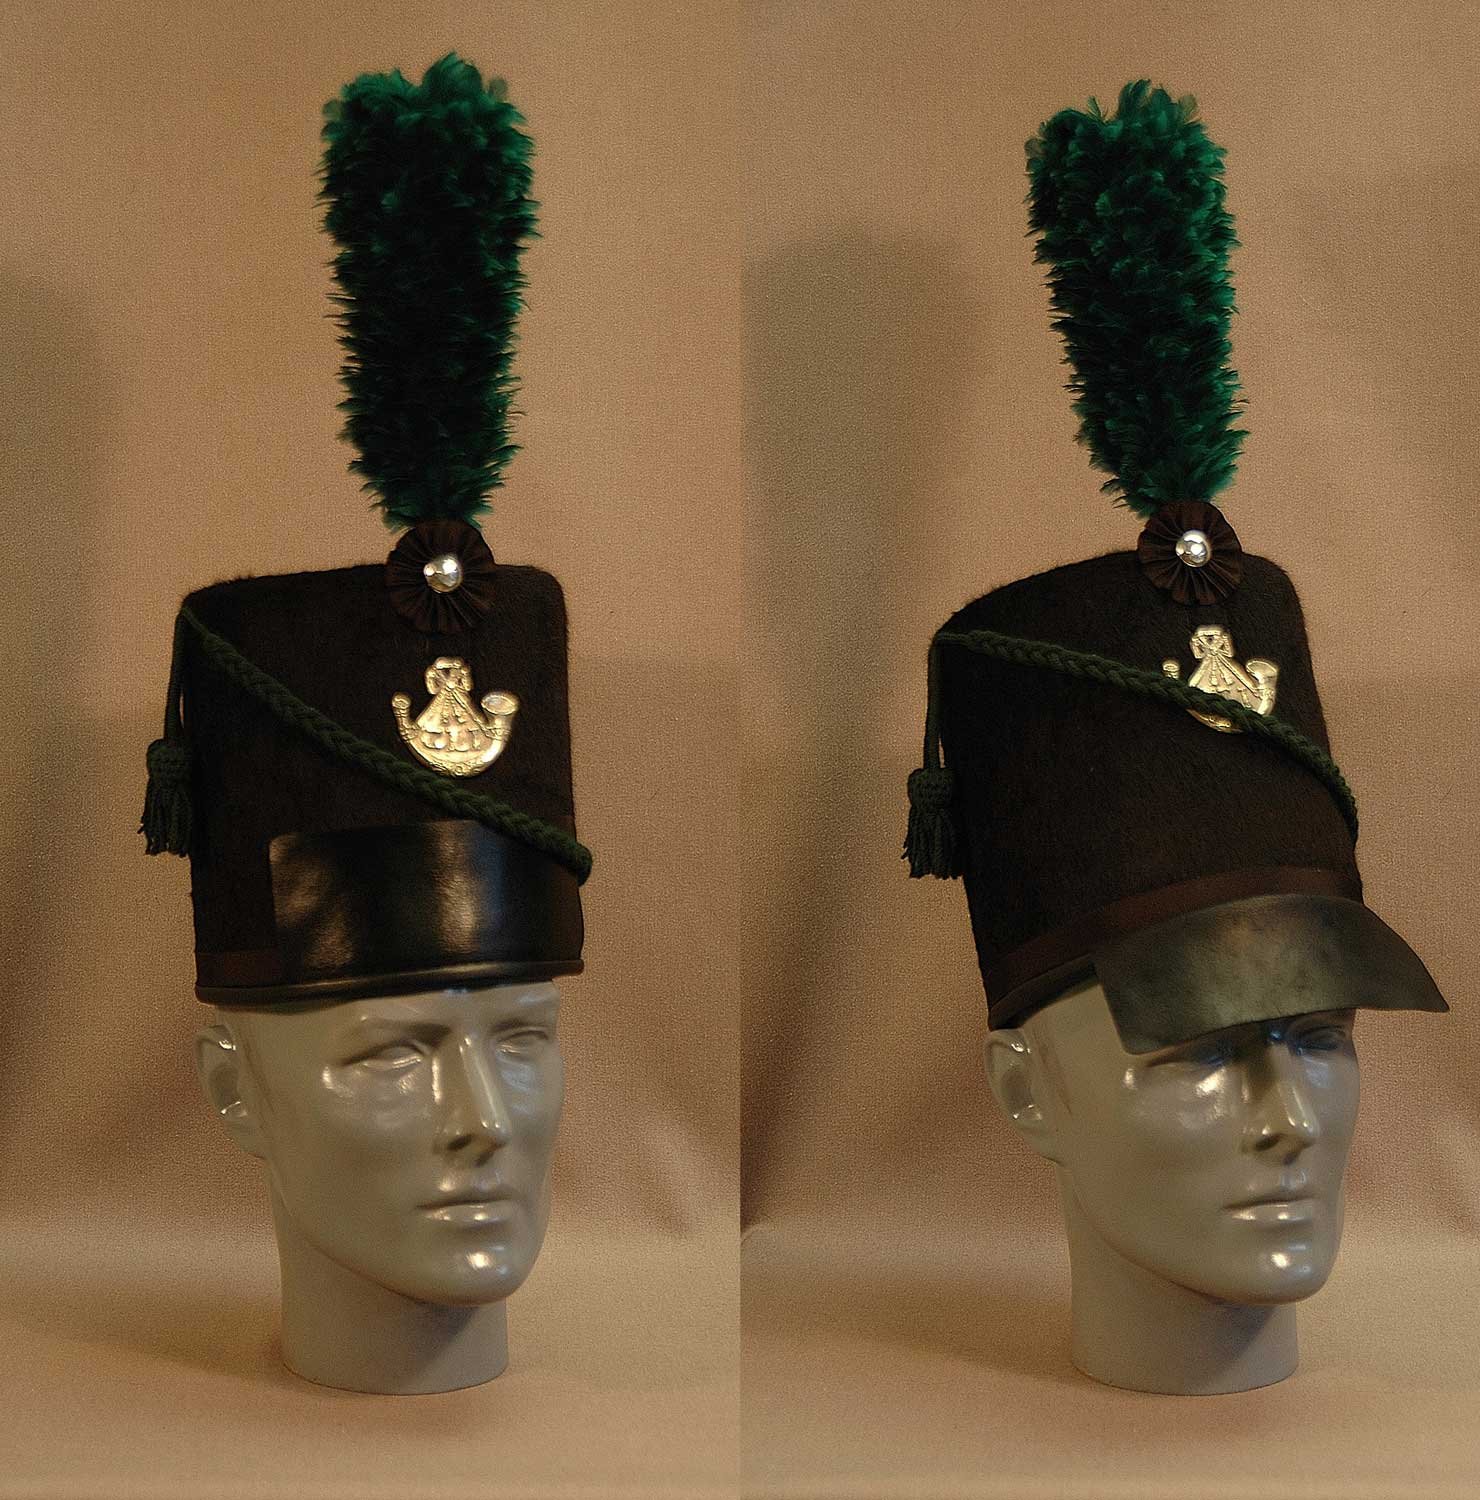 British, Glengarry Officer Shako